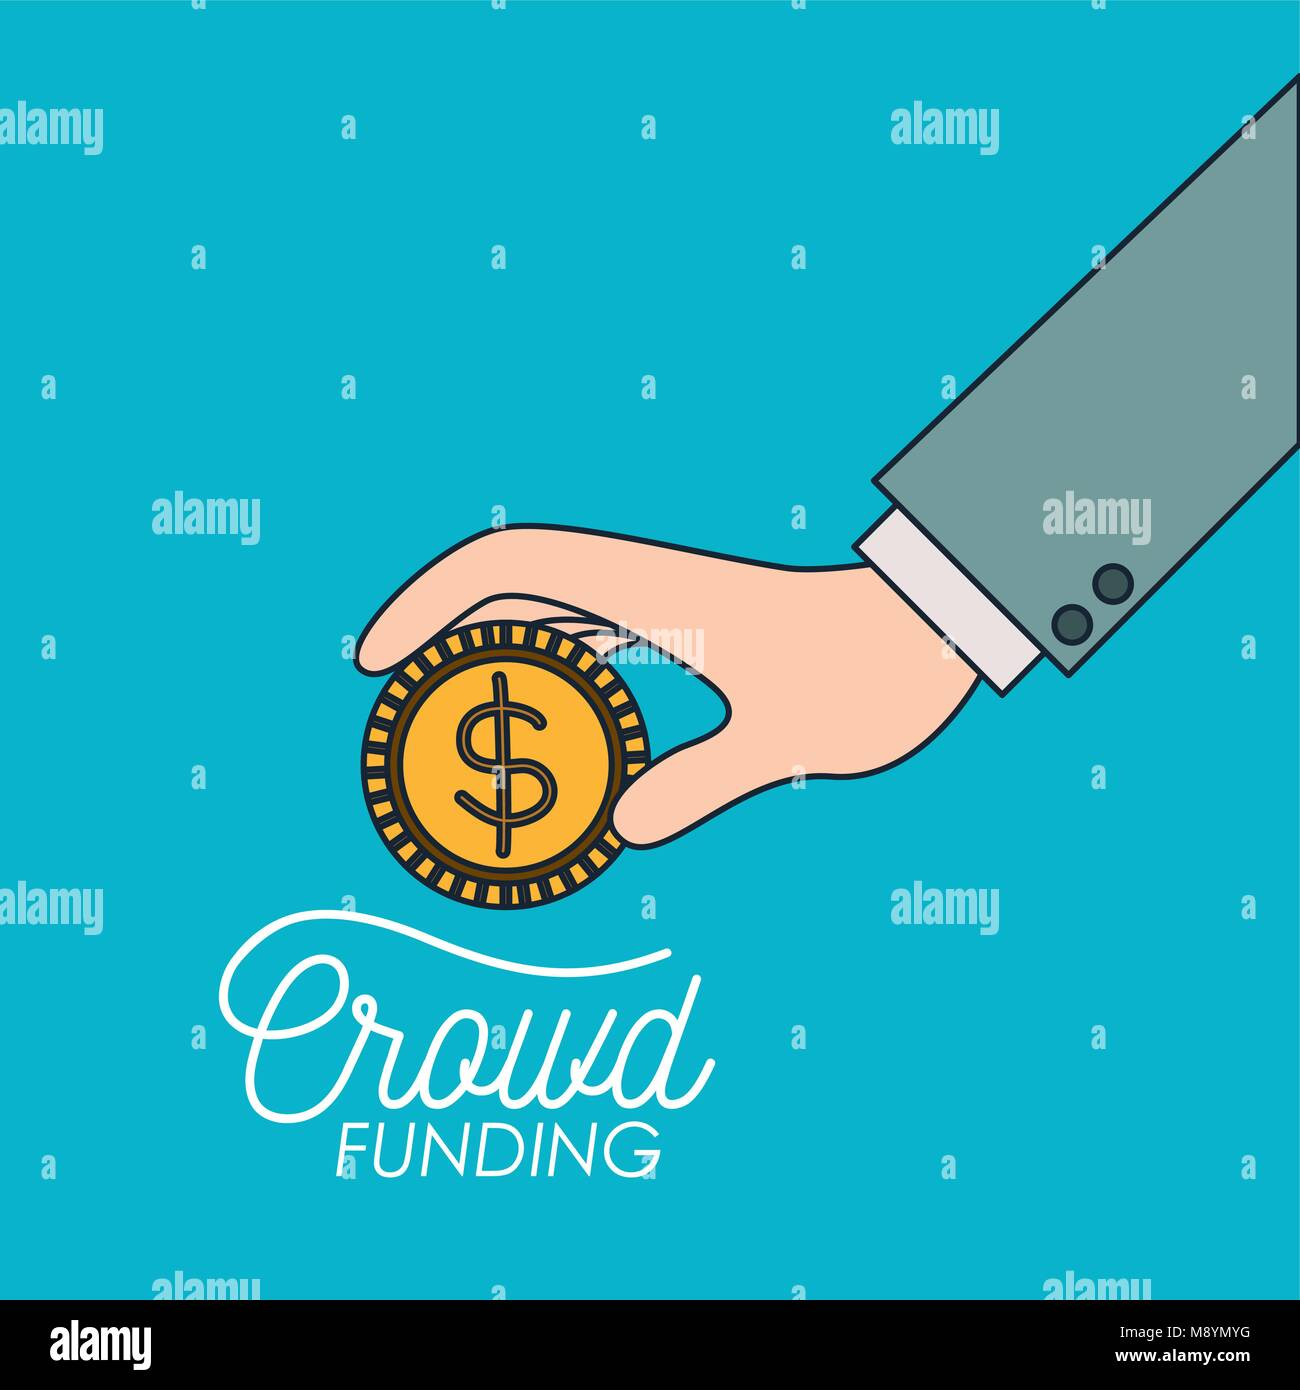 crowd funding poster of hand with coin in blue background - Stock Image